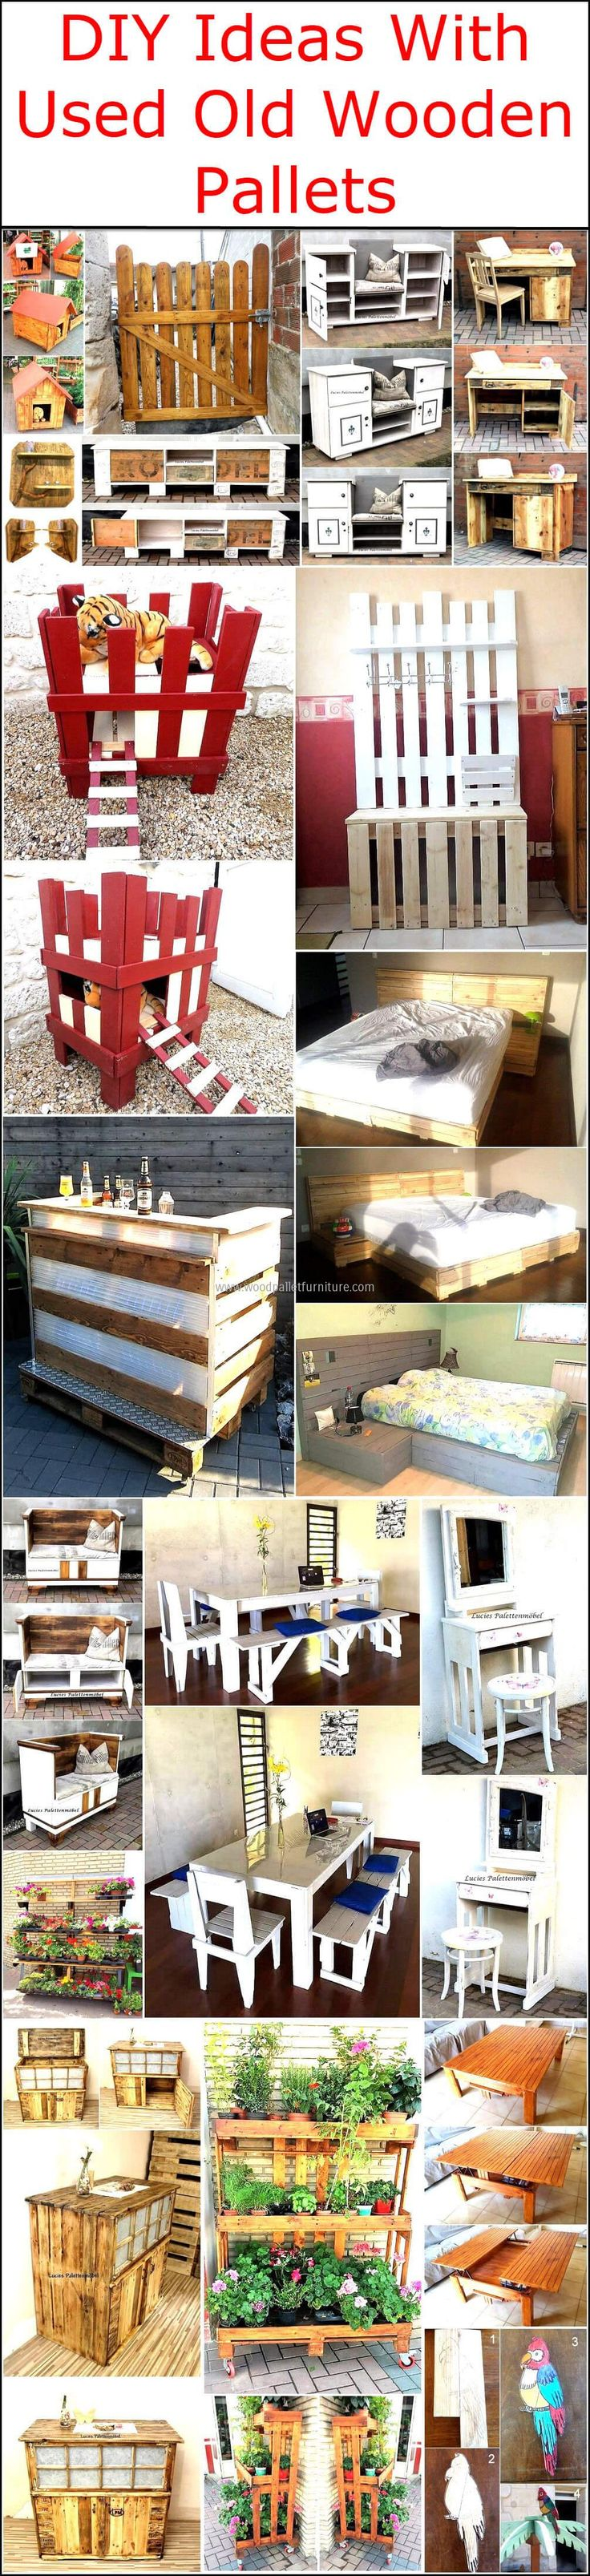 Wooden transport pallets have become increasingly popular for diy - Diy Ideas With Used Old Wooden Pallets